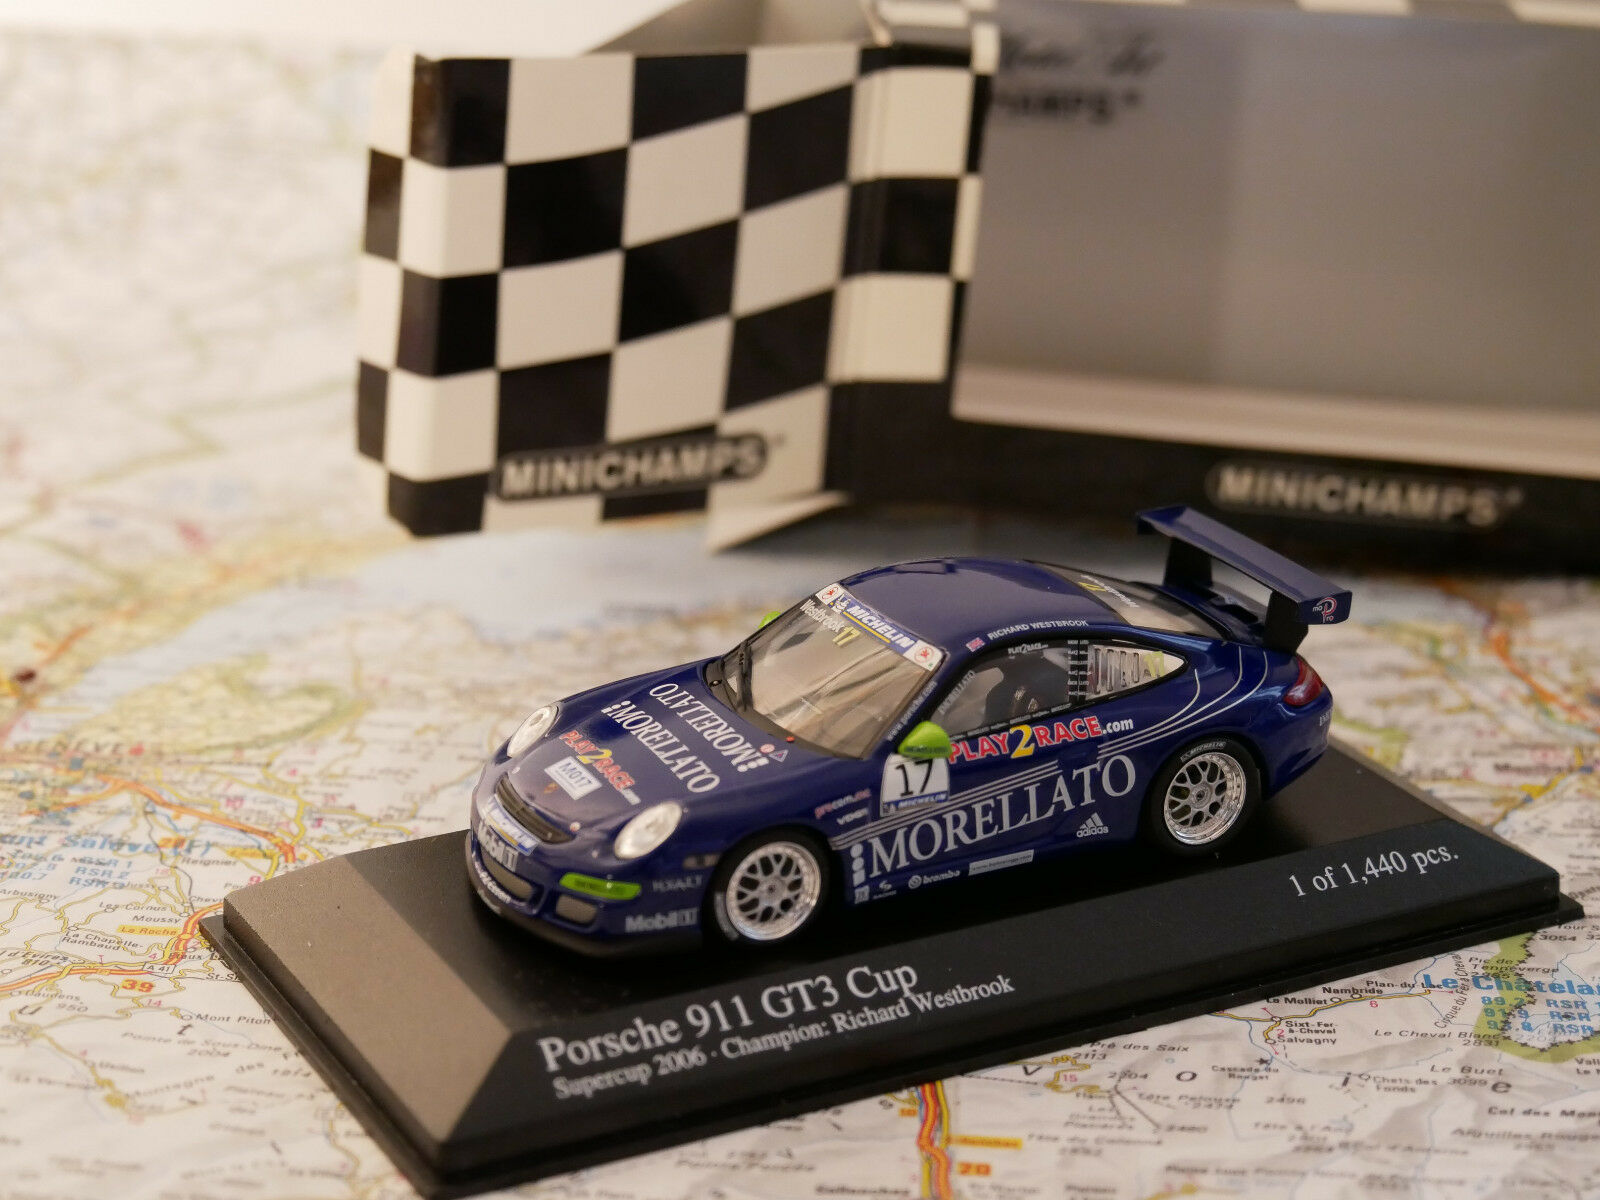 MINICHAMPS PORSCHE 911 GT3 CUP SUPERCUP 2006 TEAM MORELLATO  NEW DIE-CAST 1 43